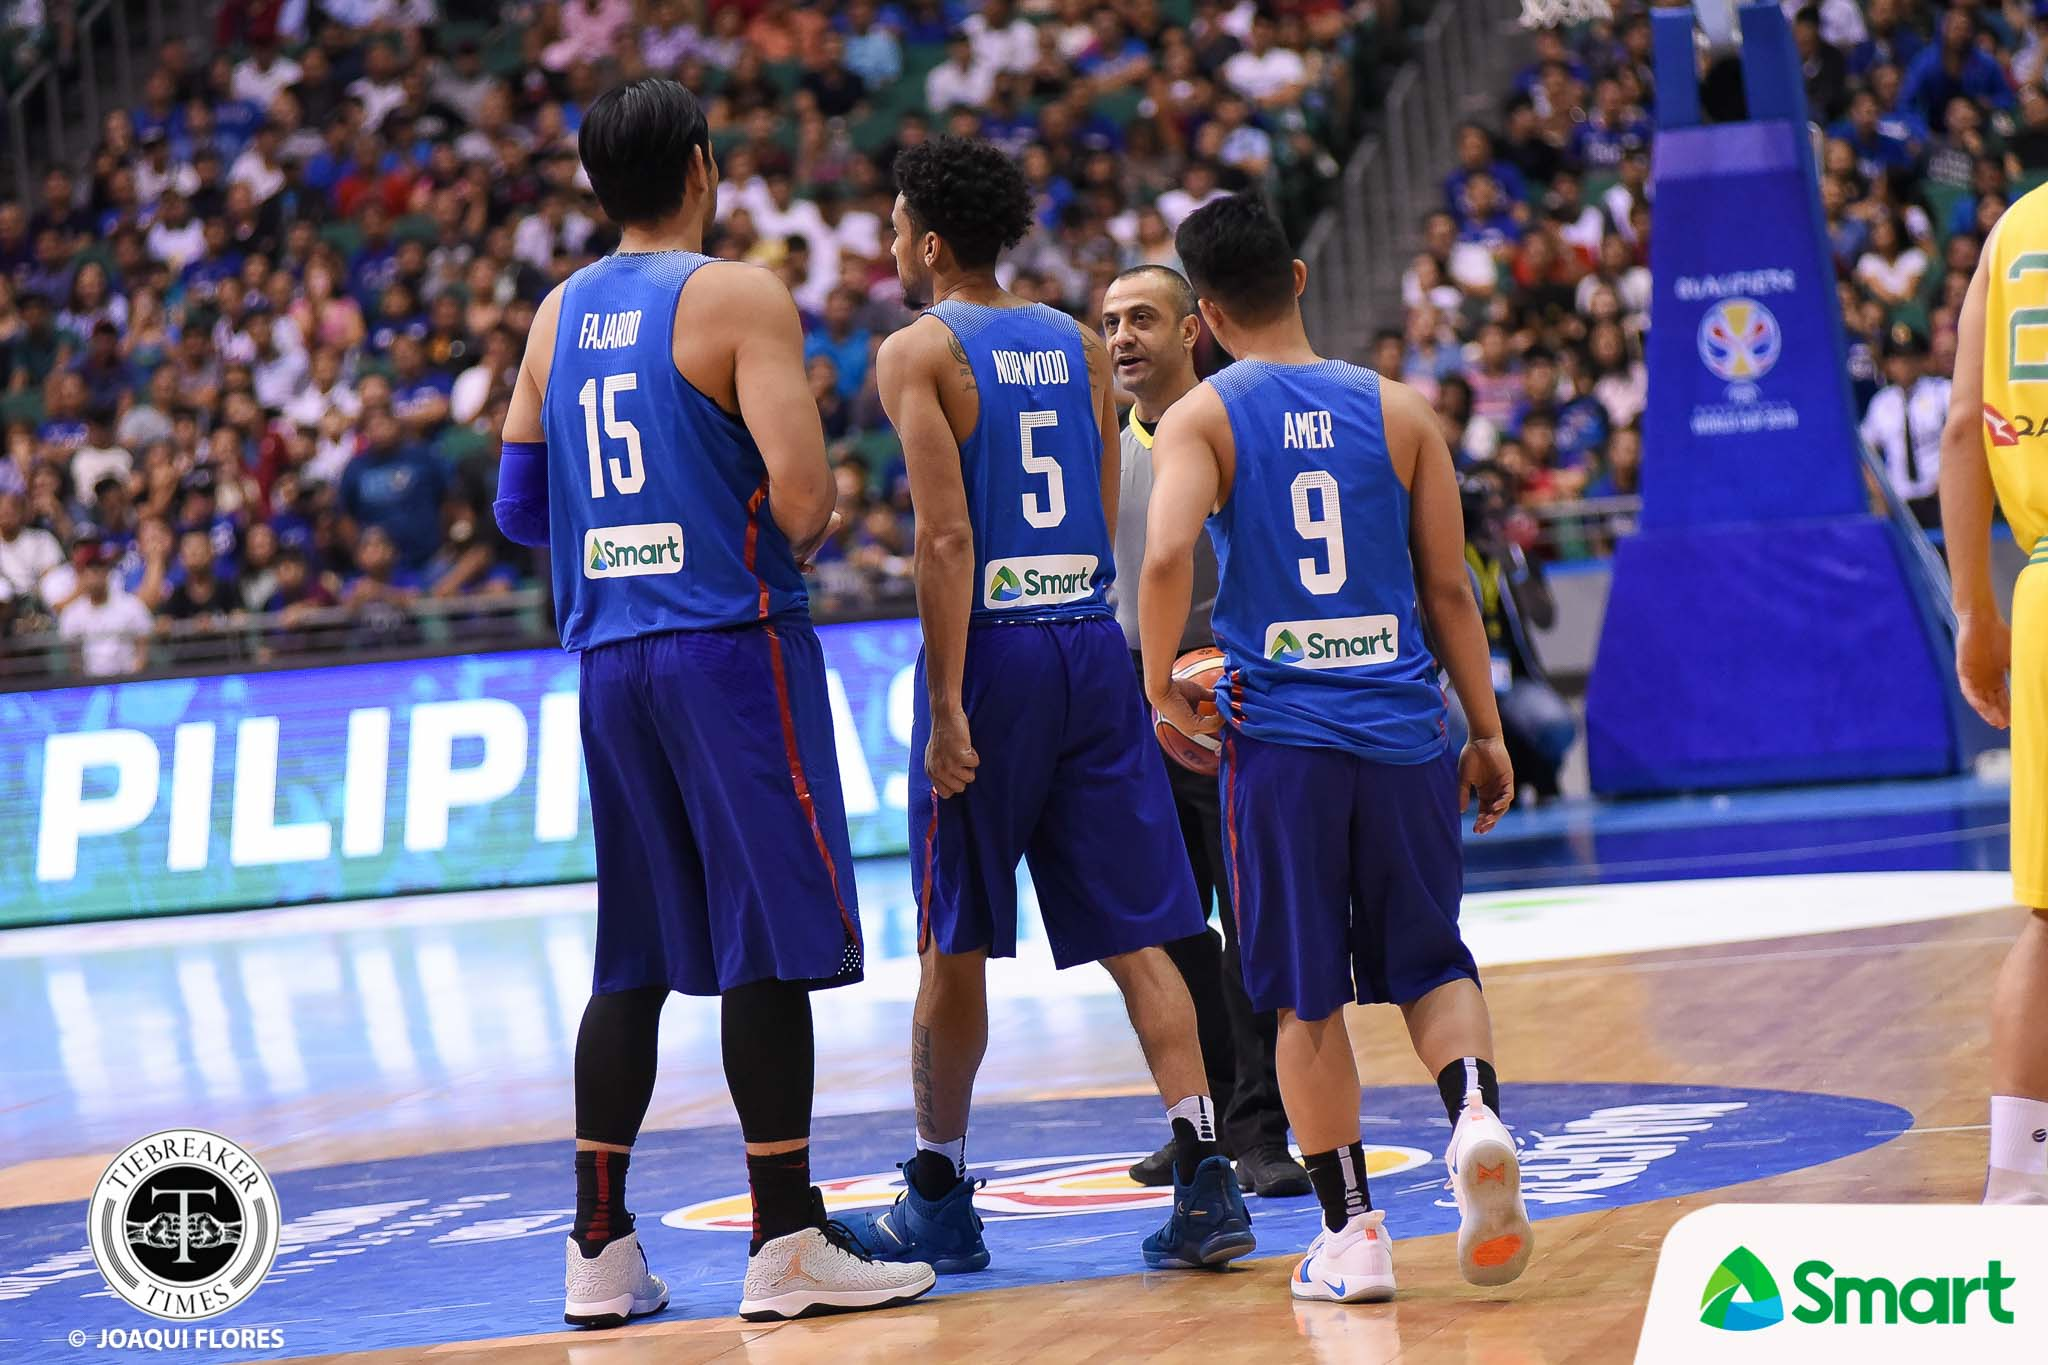 Tiebreaker Times PBA sets up meeting with Gilas regarding brawl 2019 FIBA World Cup Qualifiers Basketball Gilas Pilipinas News PBA  Troy Rosario Terrence Romeo Roger Pogoy Matthew Wright Jayson Castro Japeth Aguilar Gilas Elite Carl Cruz Calvin Abueva 2019 FIBA World Cup Qualifiers Group B 2019 FIBA World Cup Qualifiers